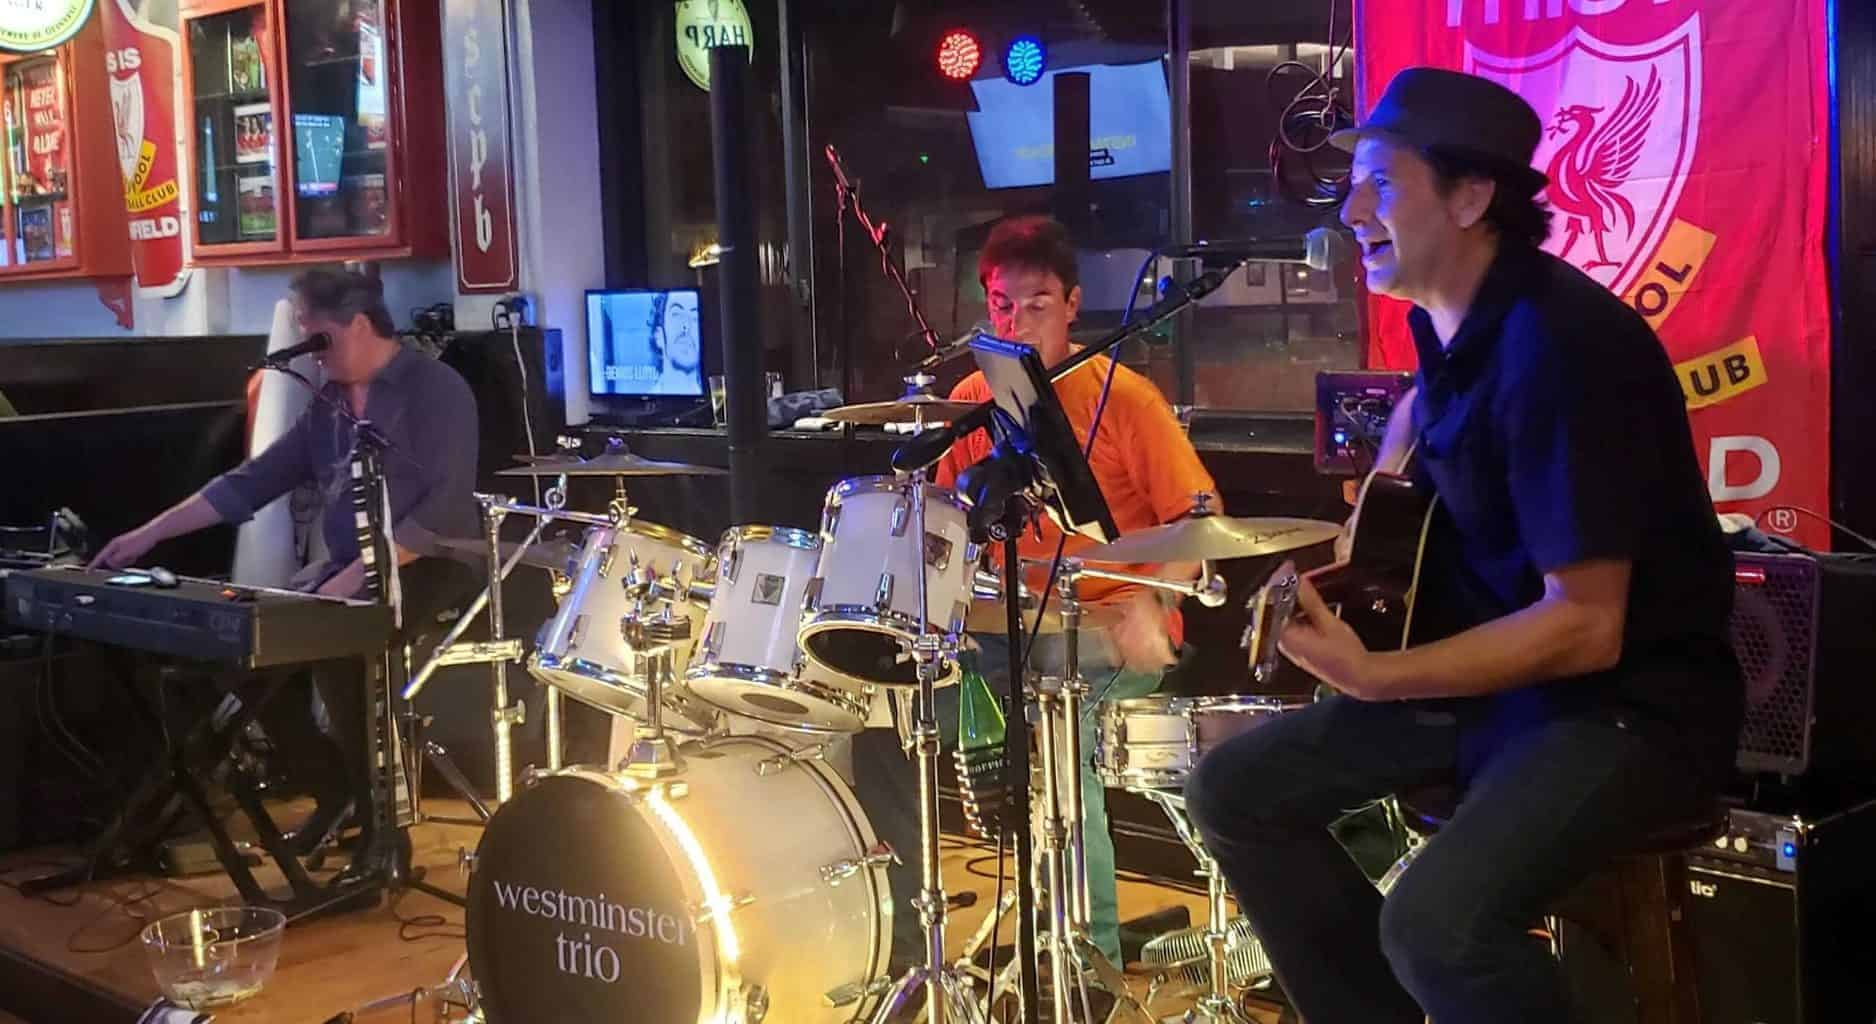 Westminster Trio at Brogues DownUnder